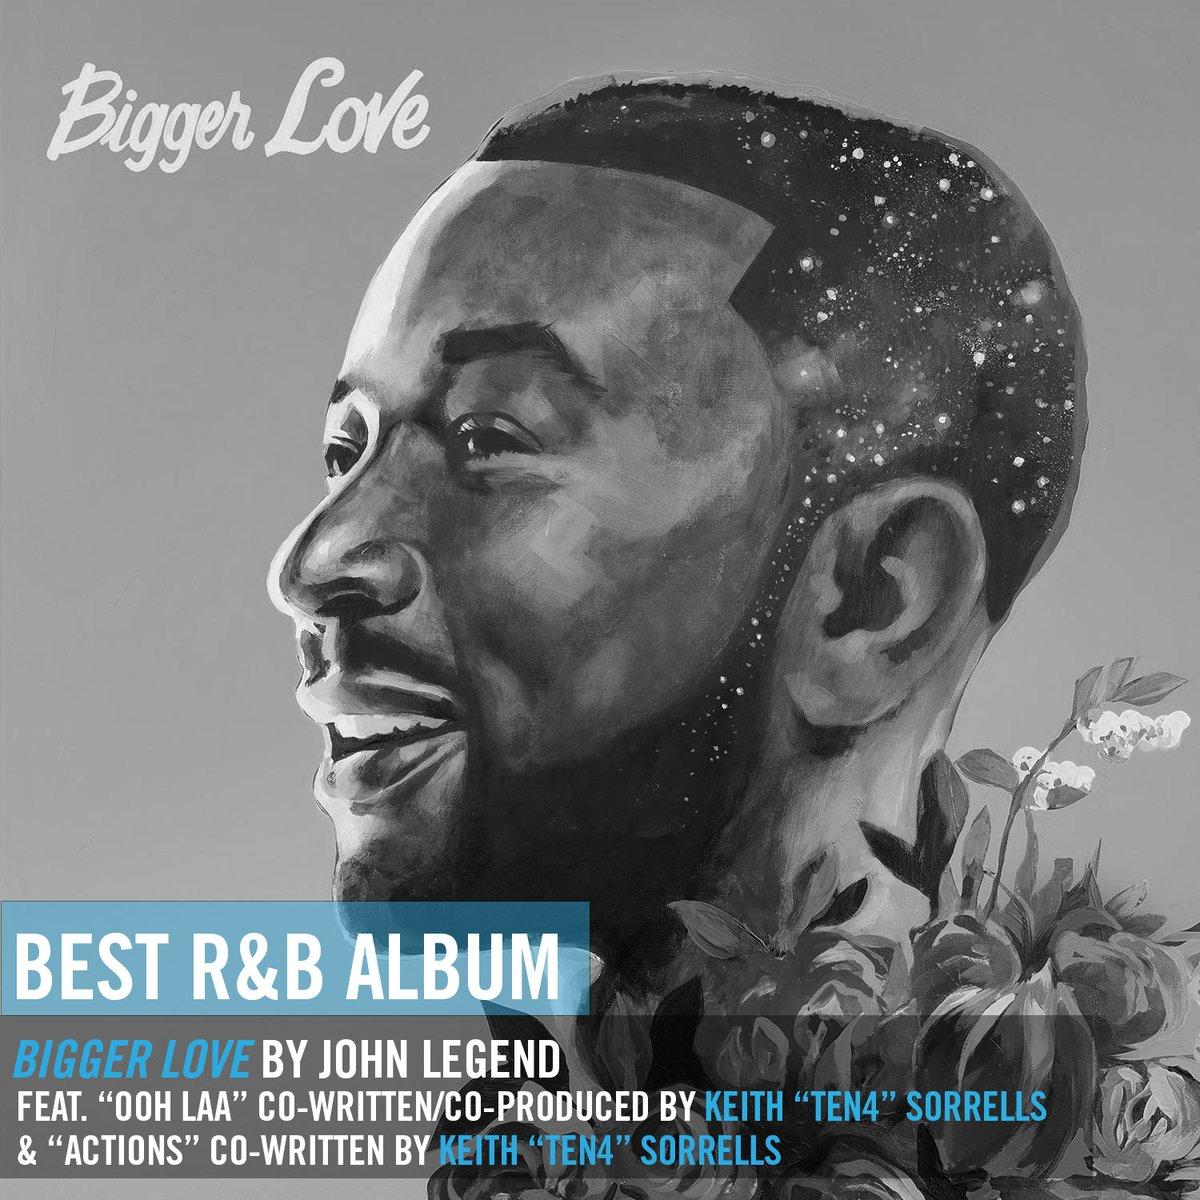 .@johnlegend's #BiggerLove, which features hit @ten4musik collabs, #Actions and #OohLaa, earned a @RecordingAcad #GRAMMYs nomination for Best R&B Album! 💙💪